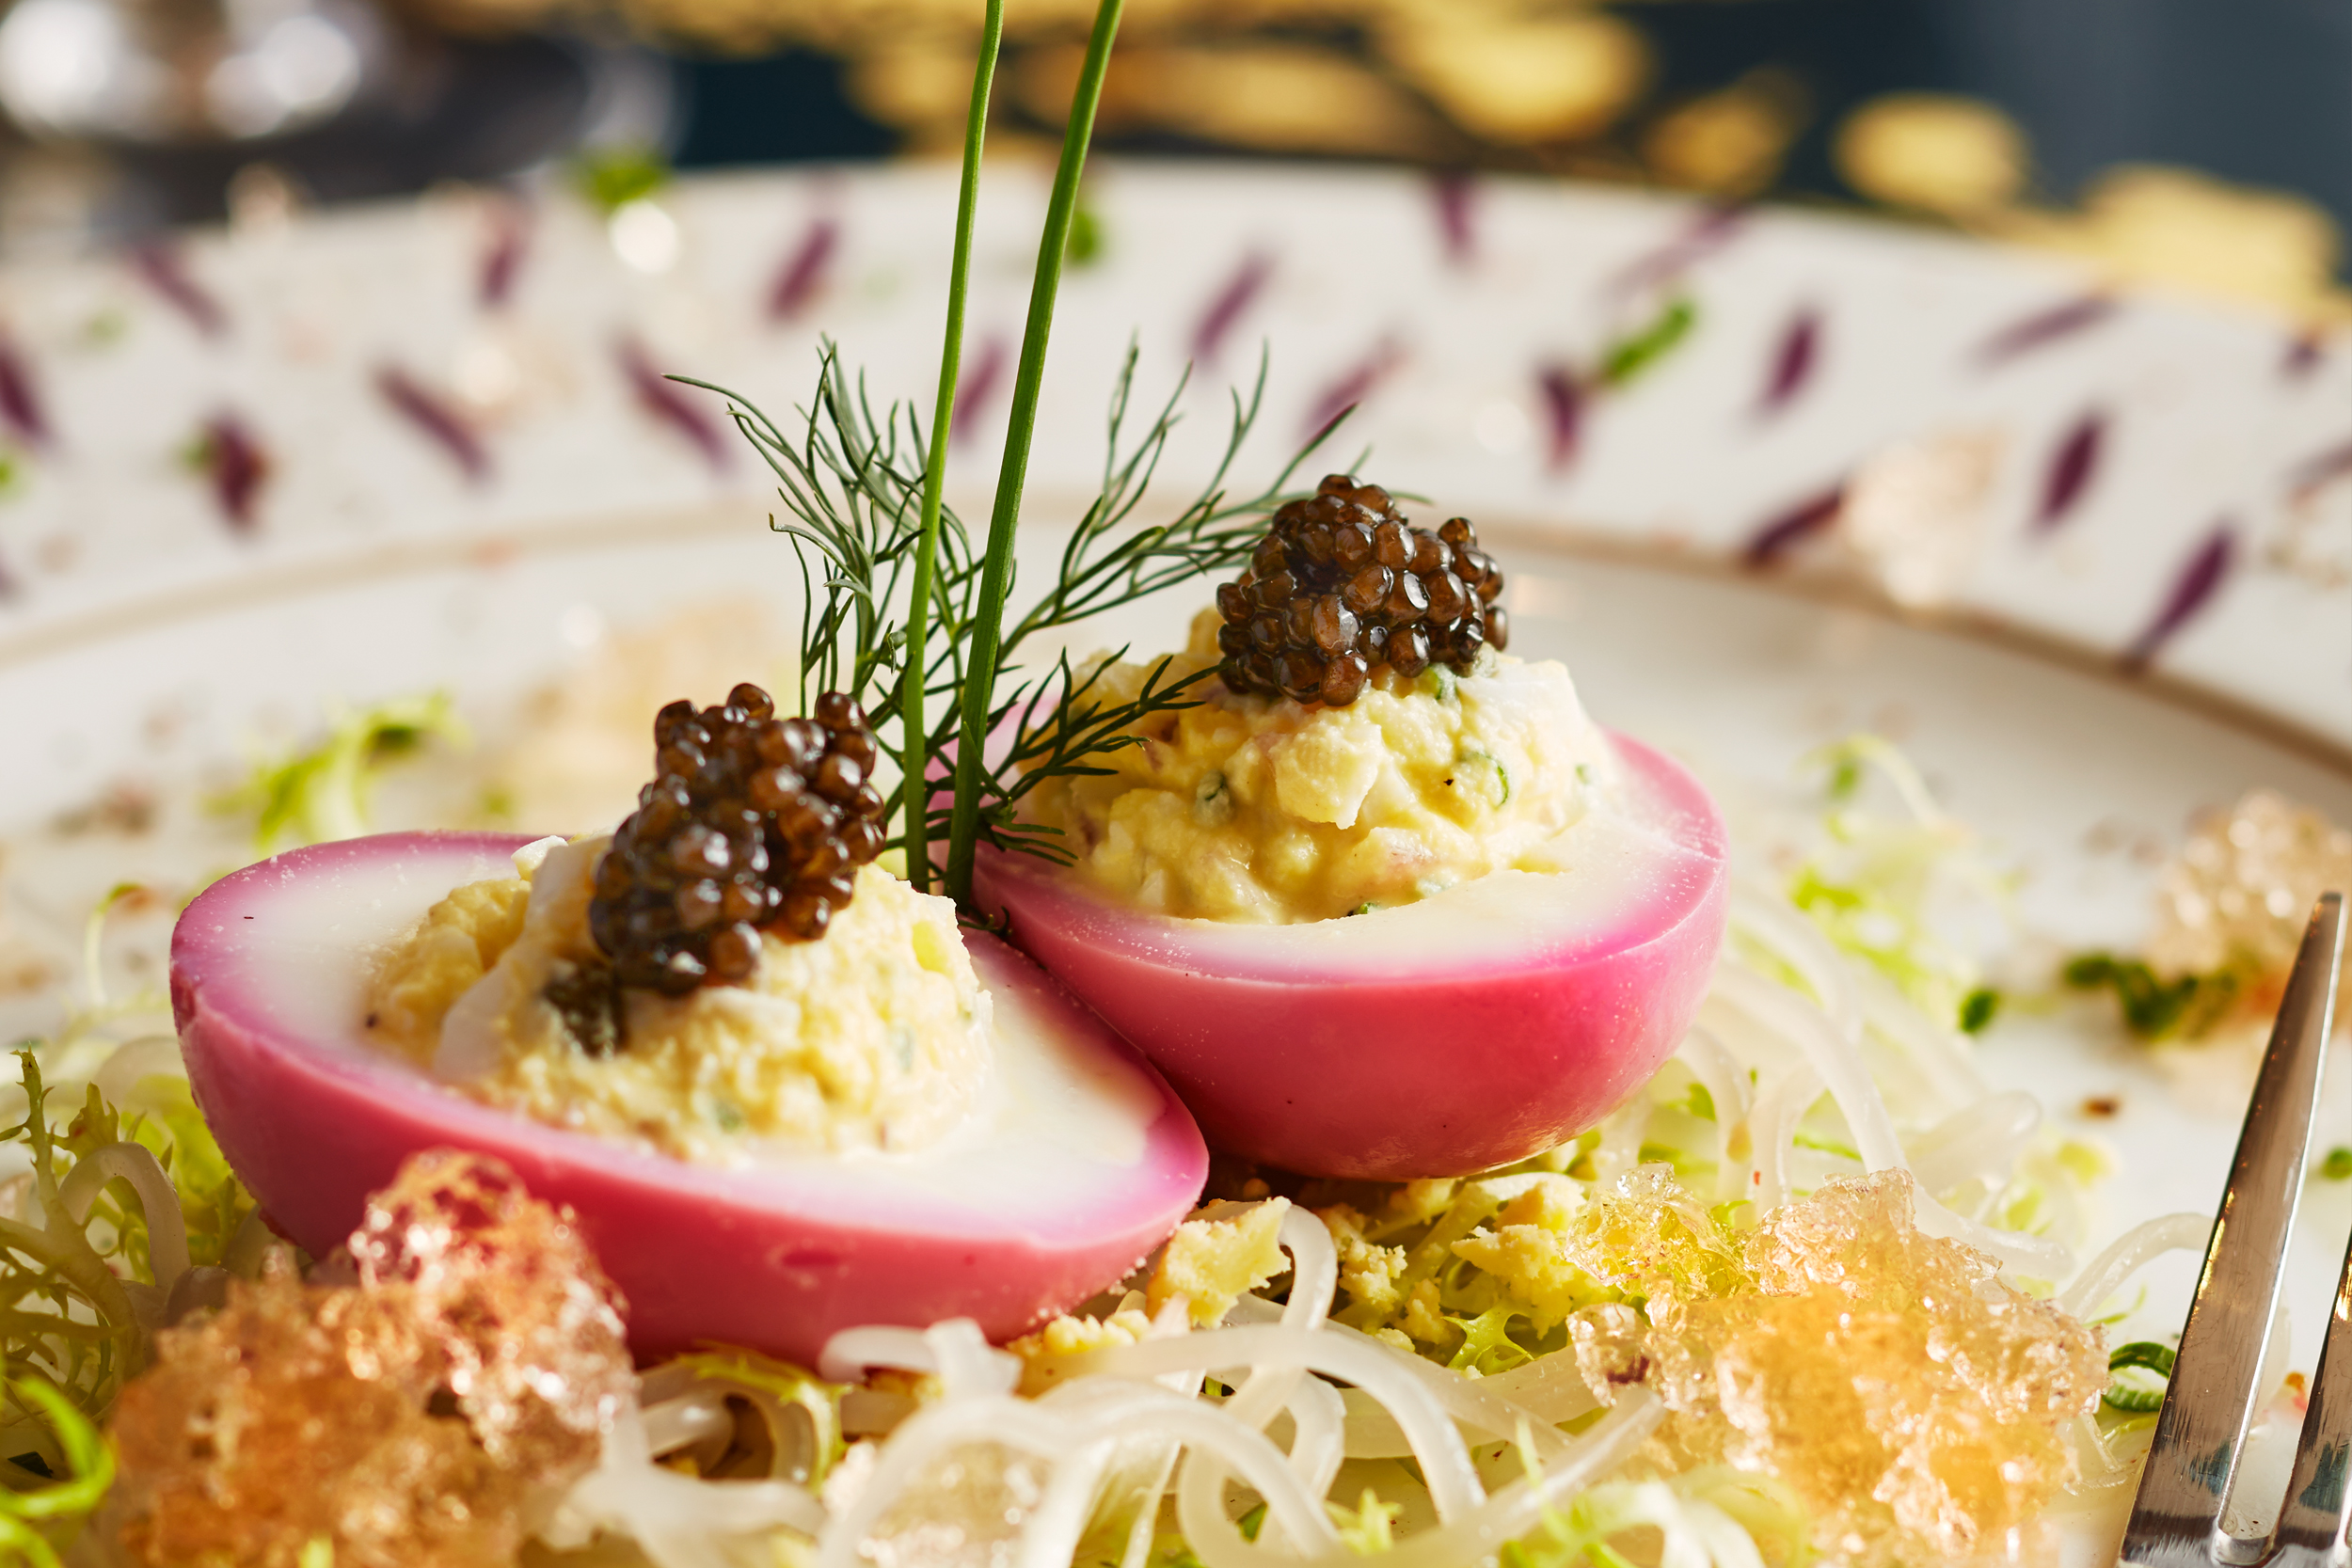 Faberge Egg with Caviar Appetizer.jpg